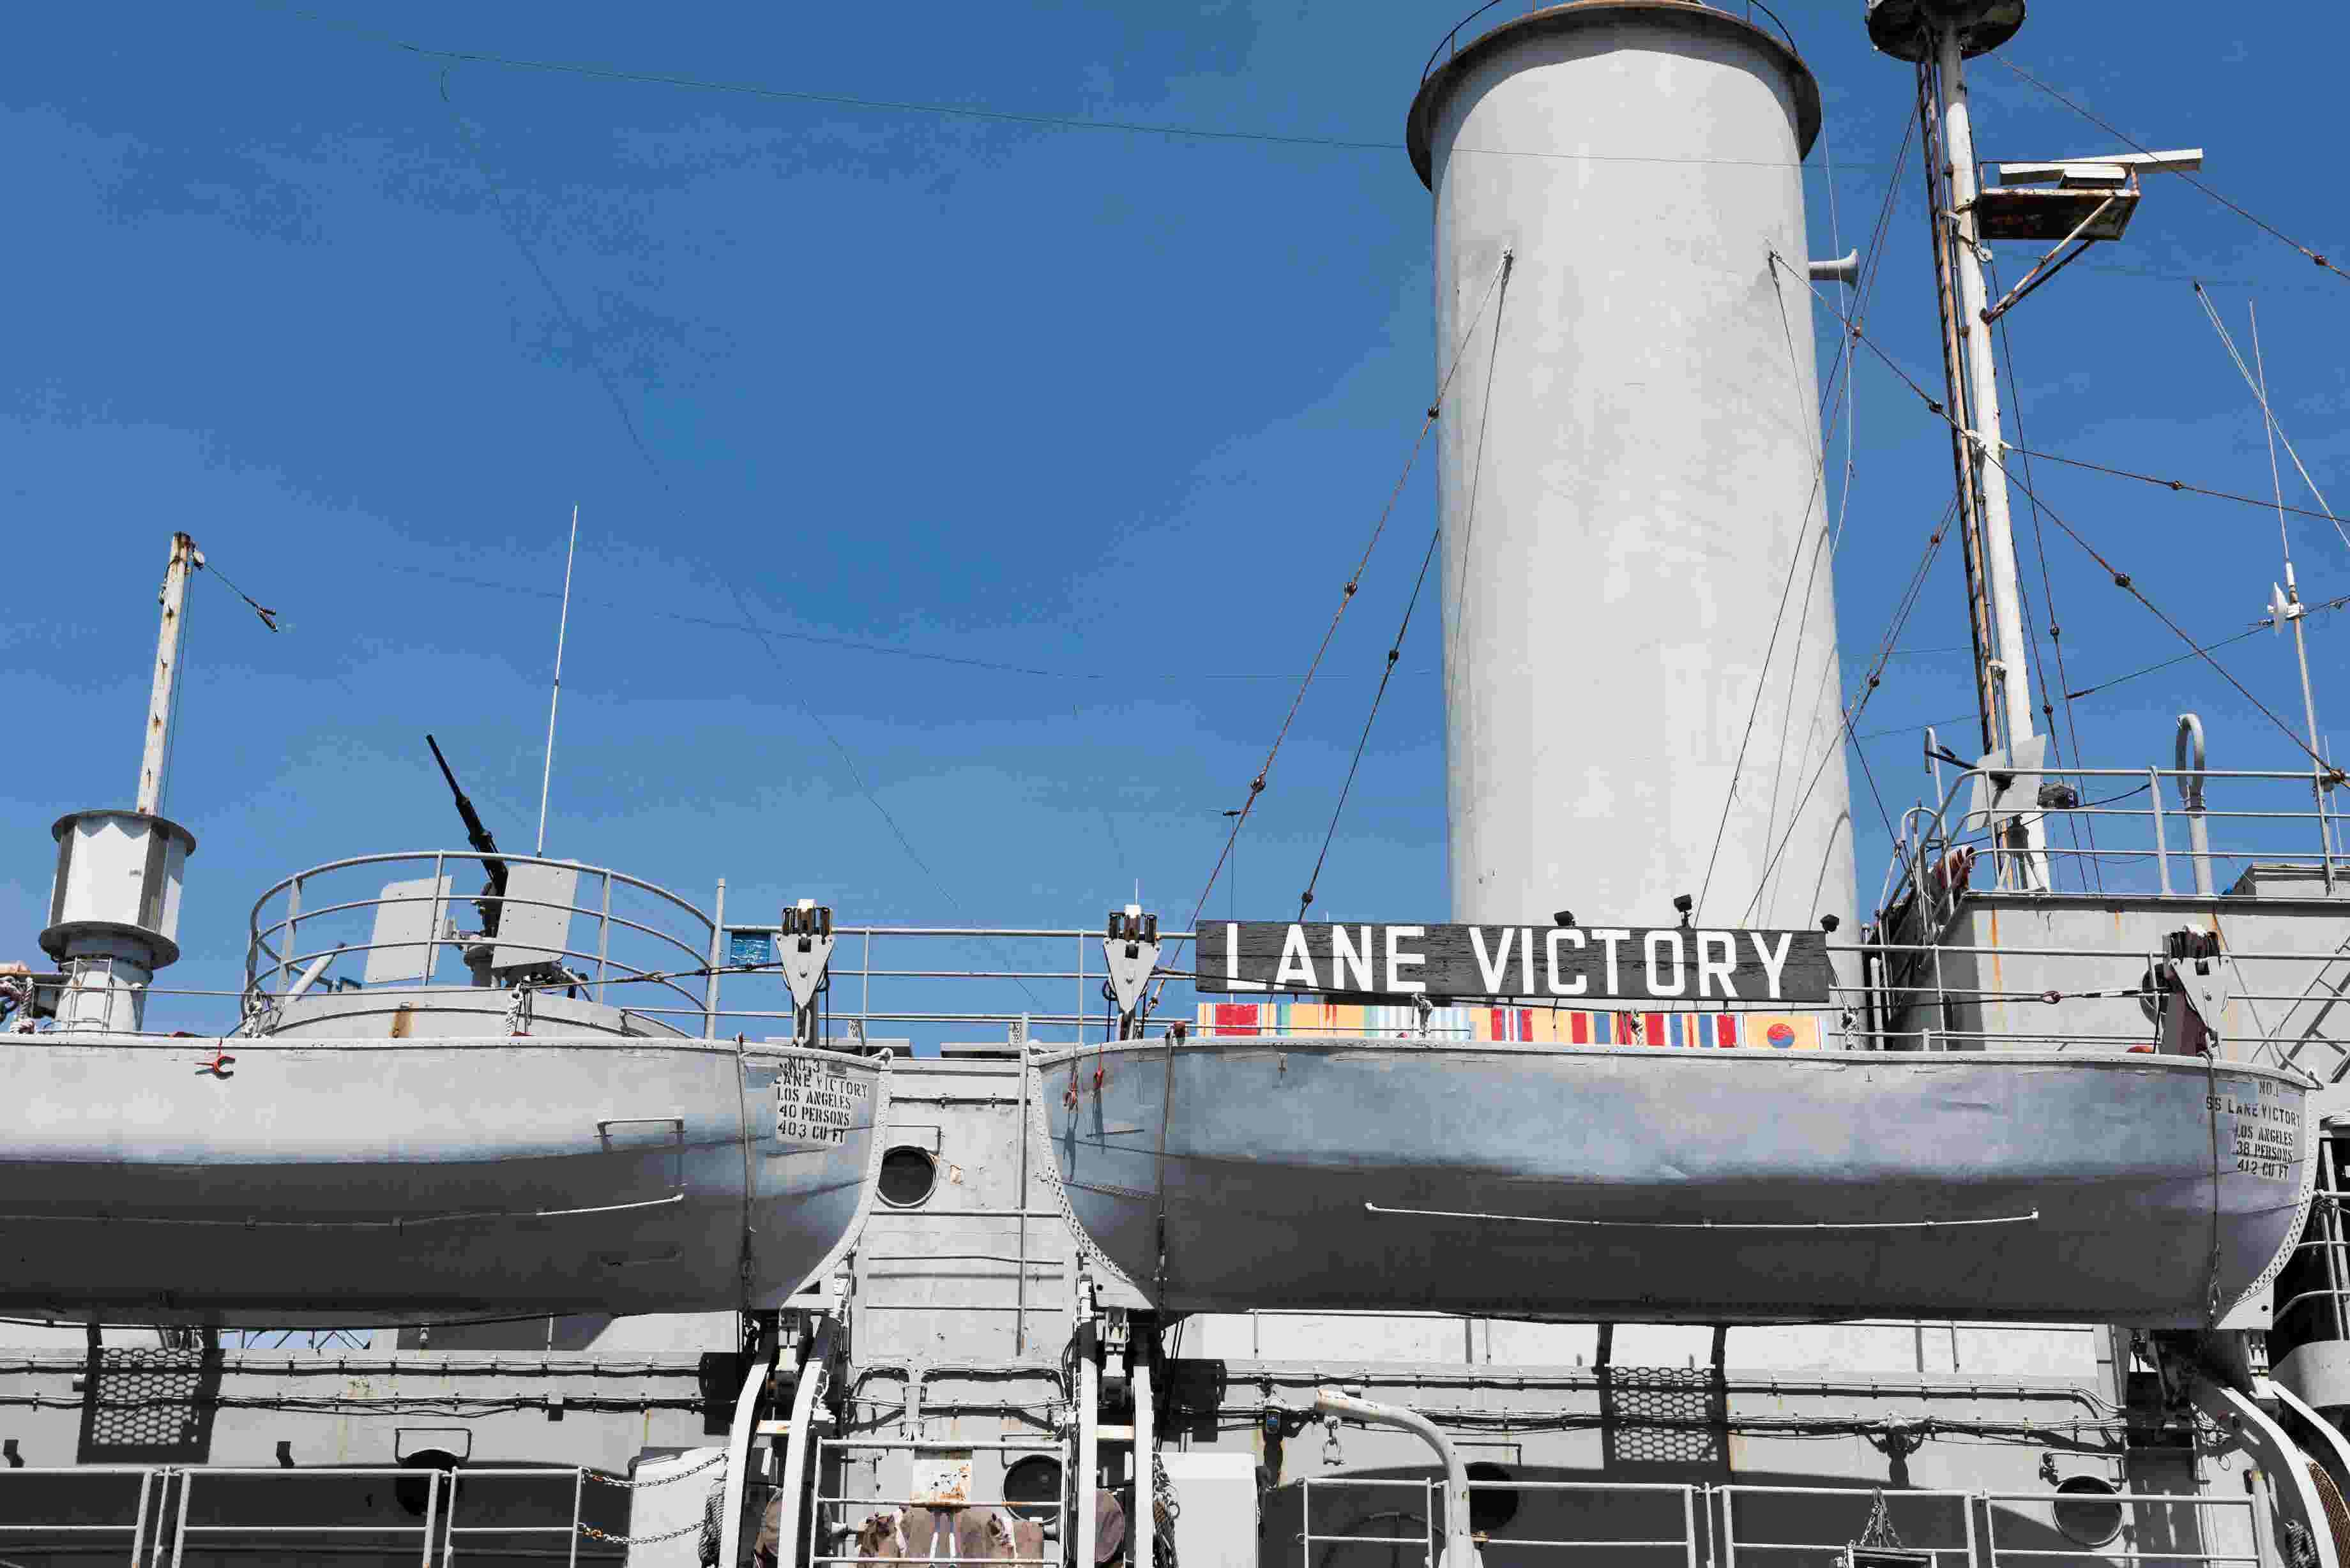 Aging WWII ship fights new battle, rust